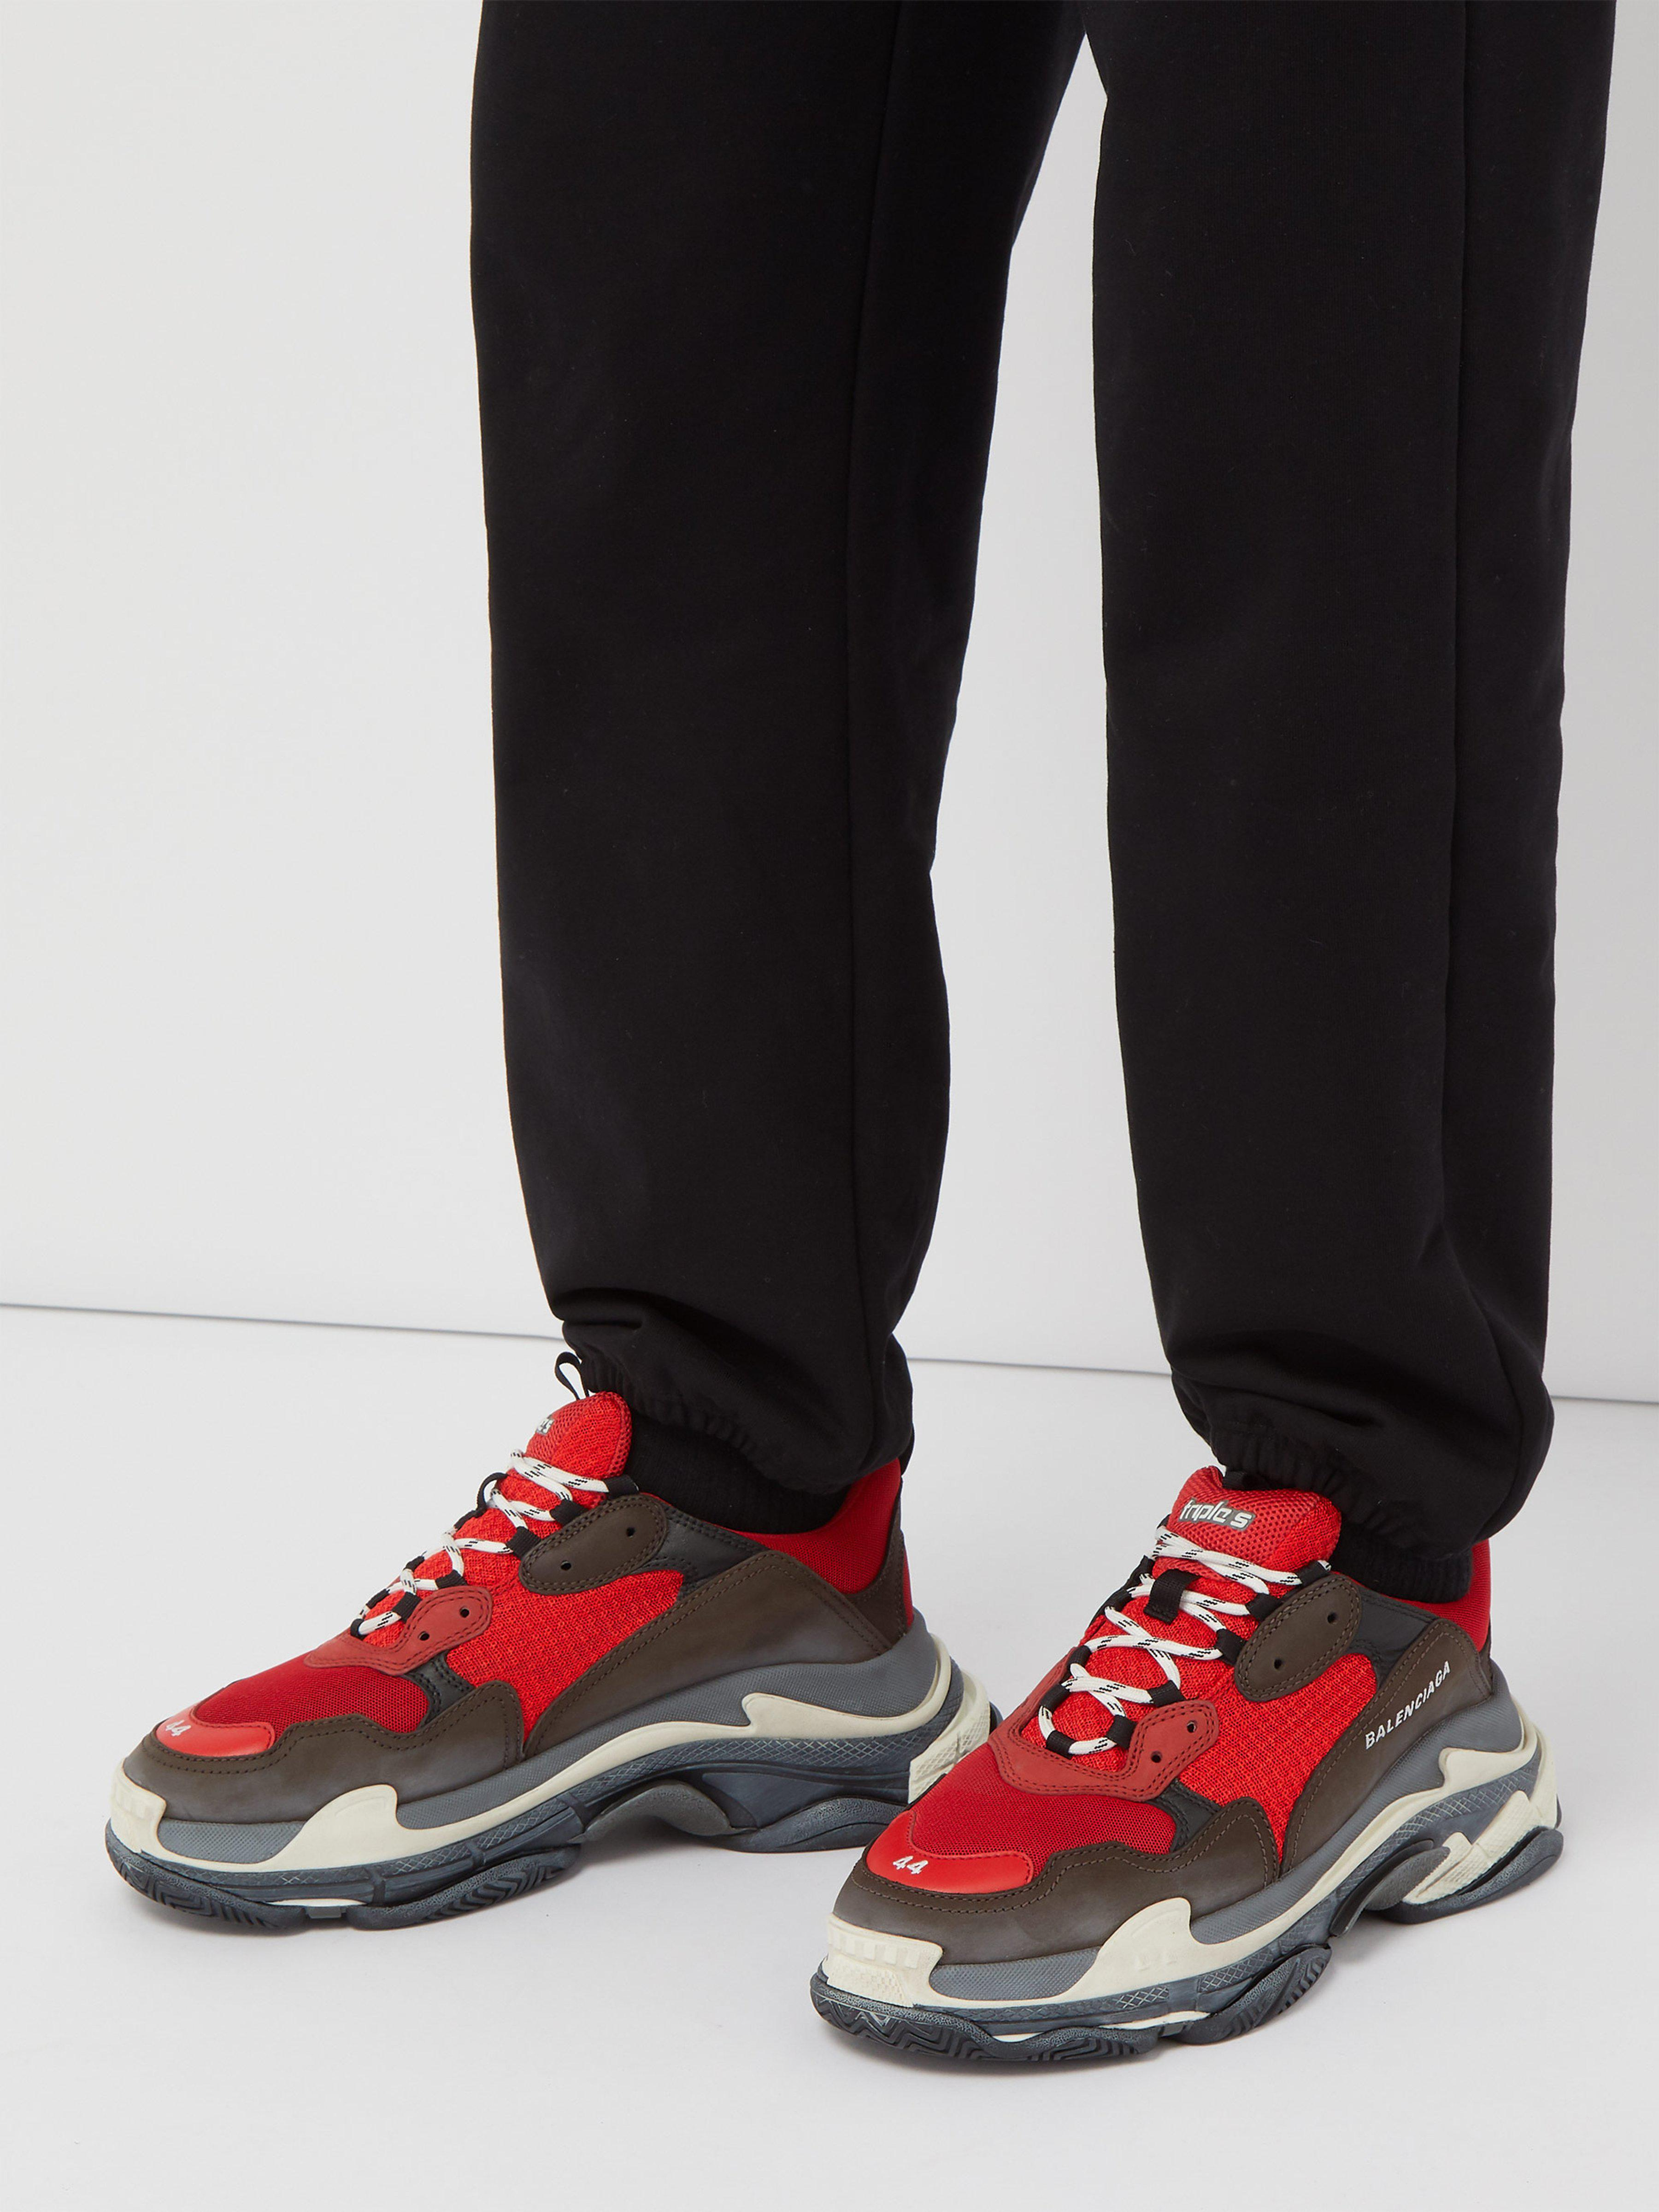 e90c87aea8cc Balenciaga Capsule Triple S Runner Leather And Mesh Trainers in Red for Men  - Save 20% - Lyst